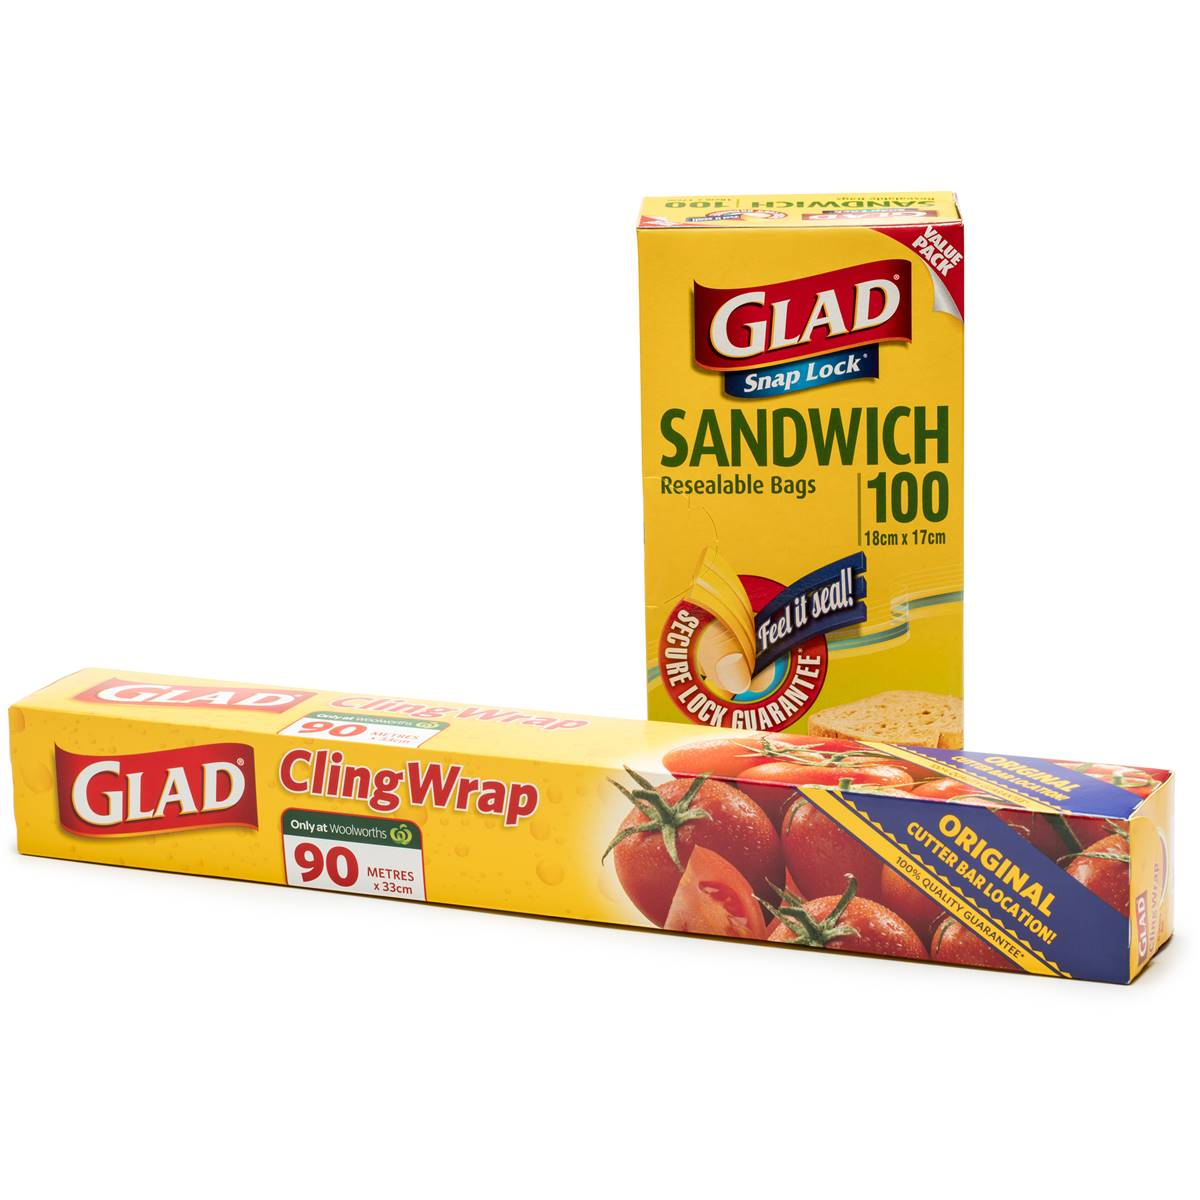 glad snap wrap snap lock sandwich bags cling wrap